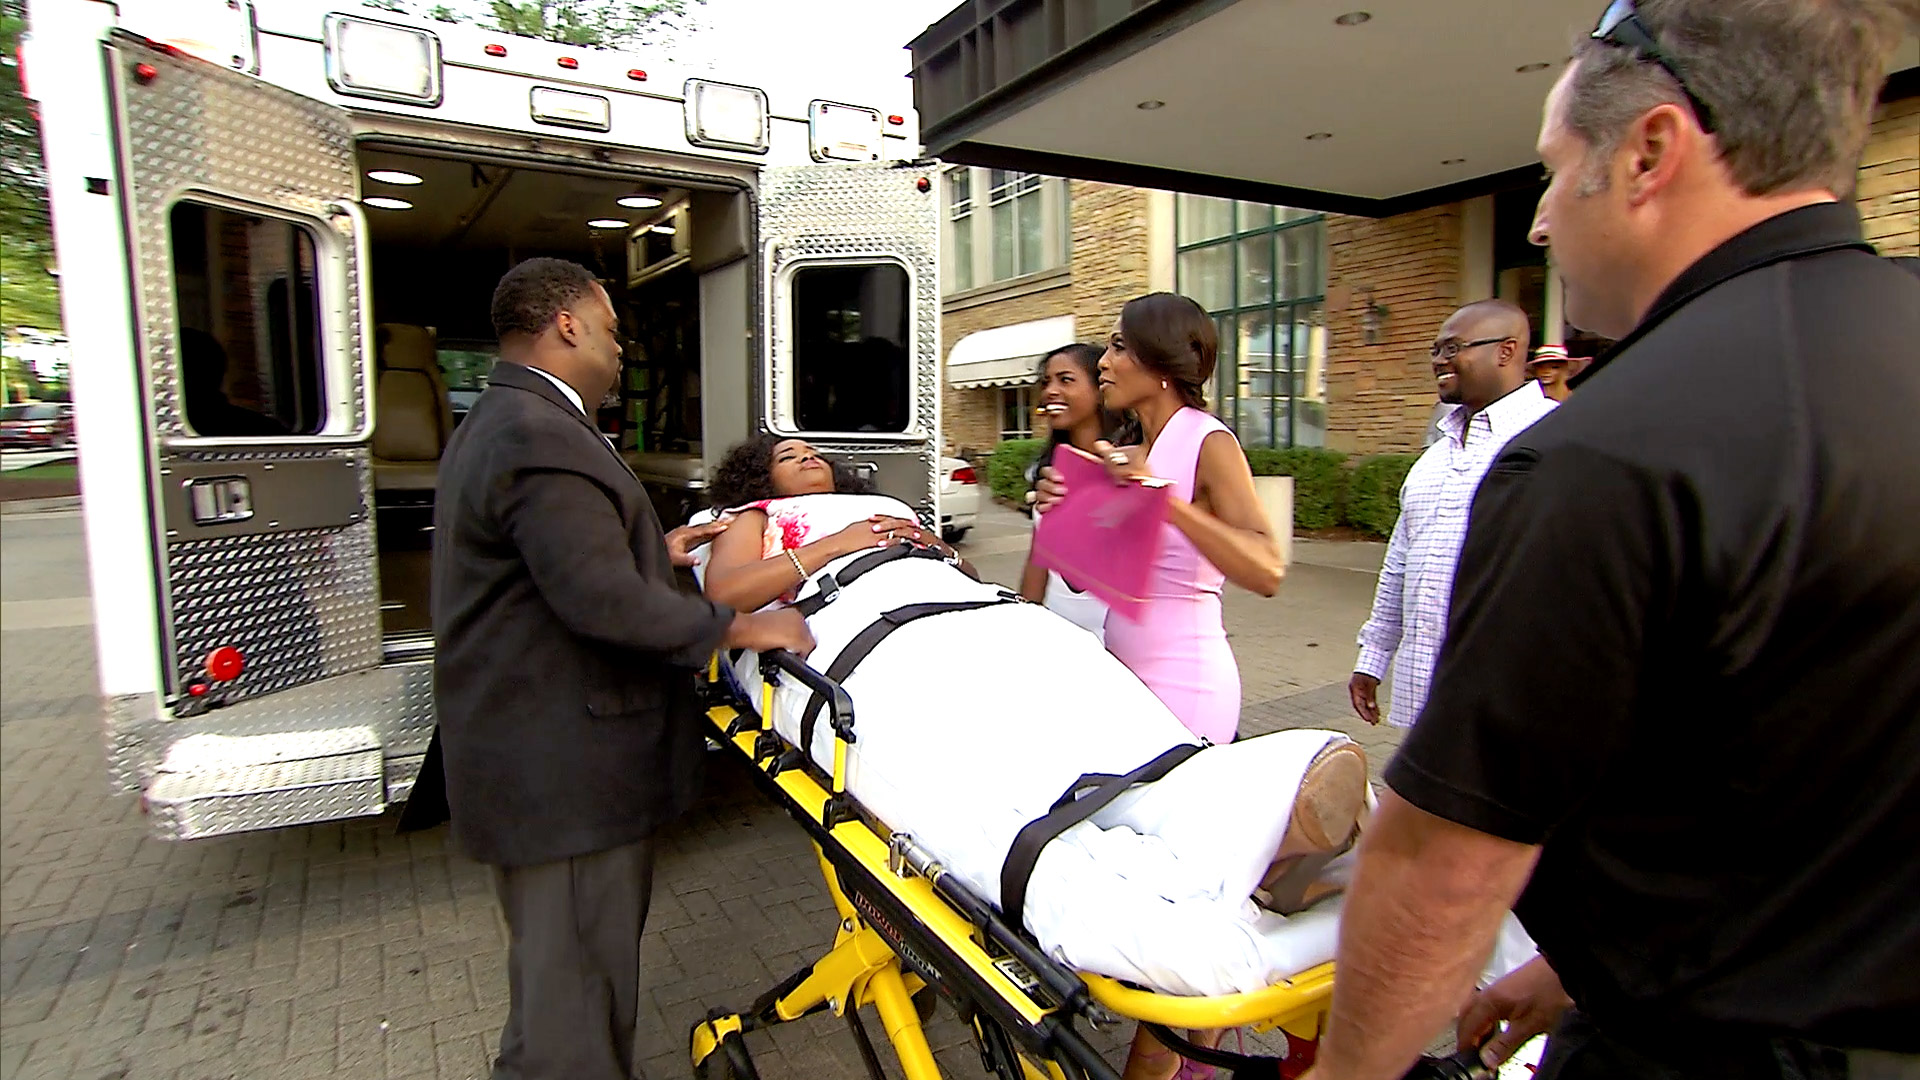 Dr. Heavenly Enters a Party in an Ambulance